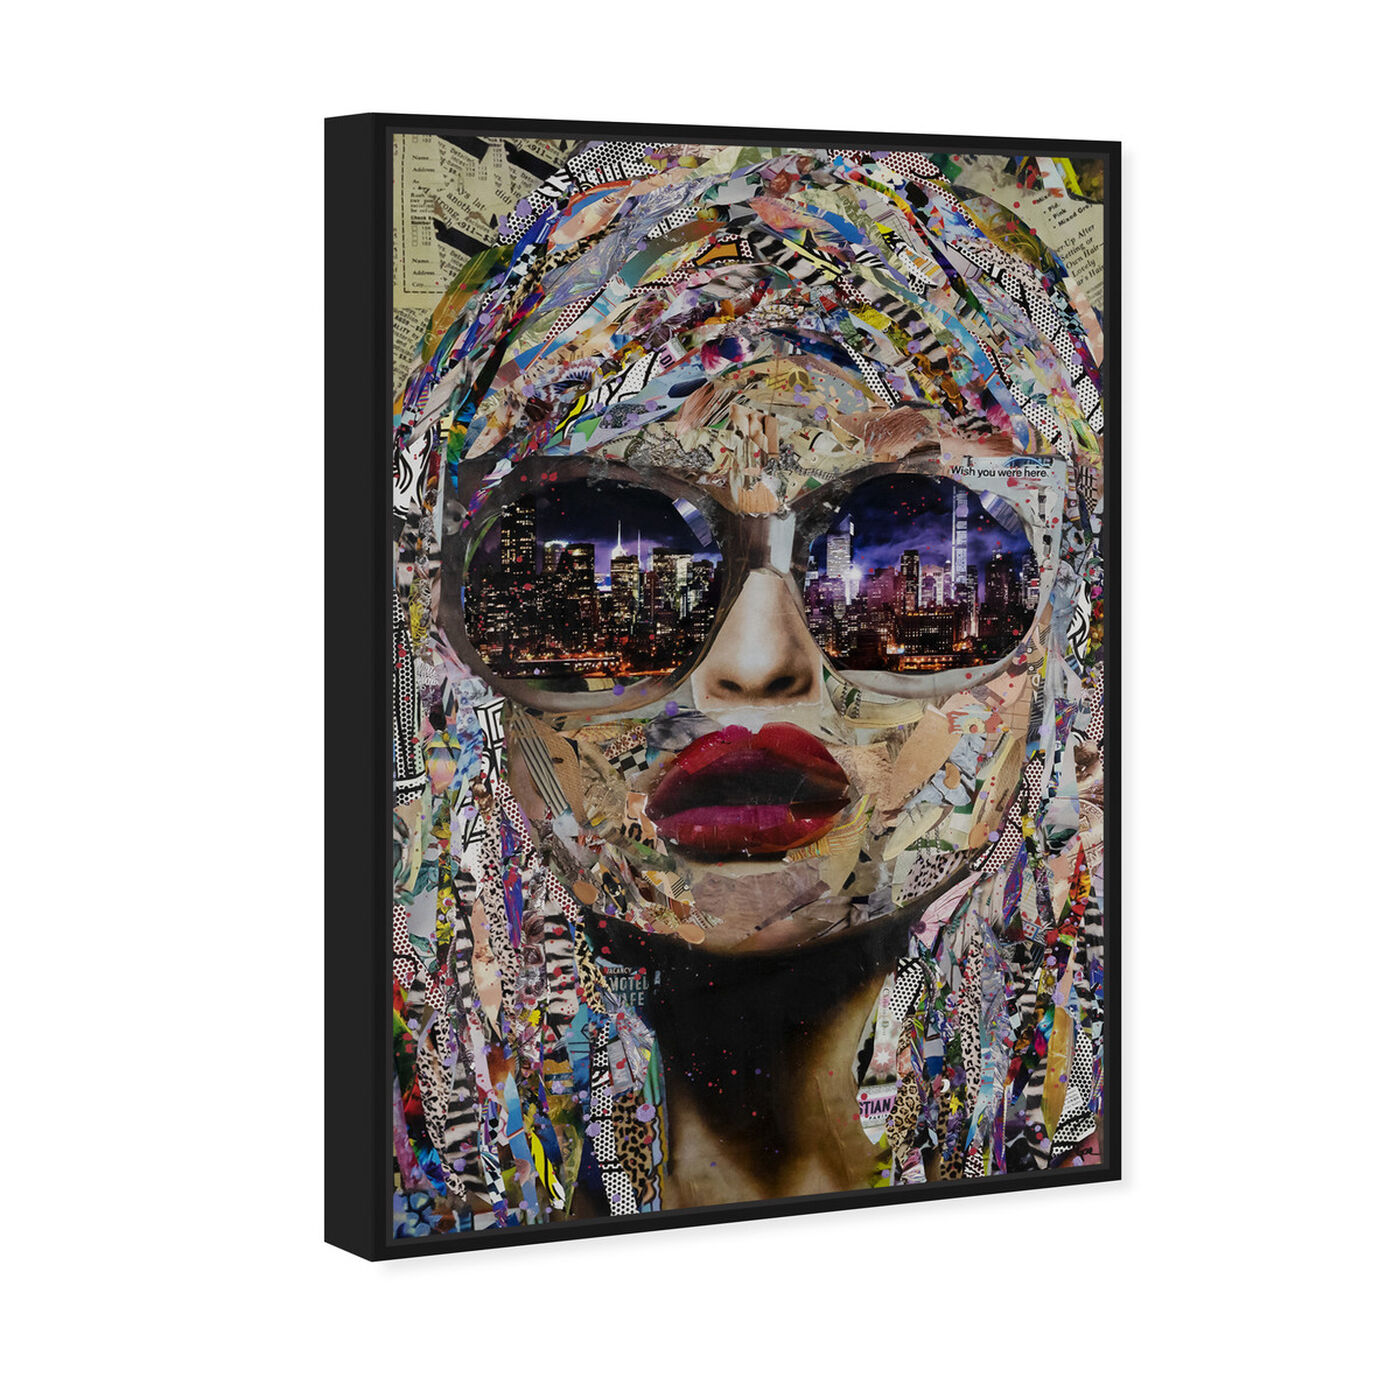 Angled view of Katy Hirschfeld - Timing is Now featuring fashion and glam and portraits art.